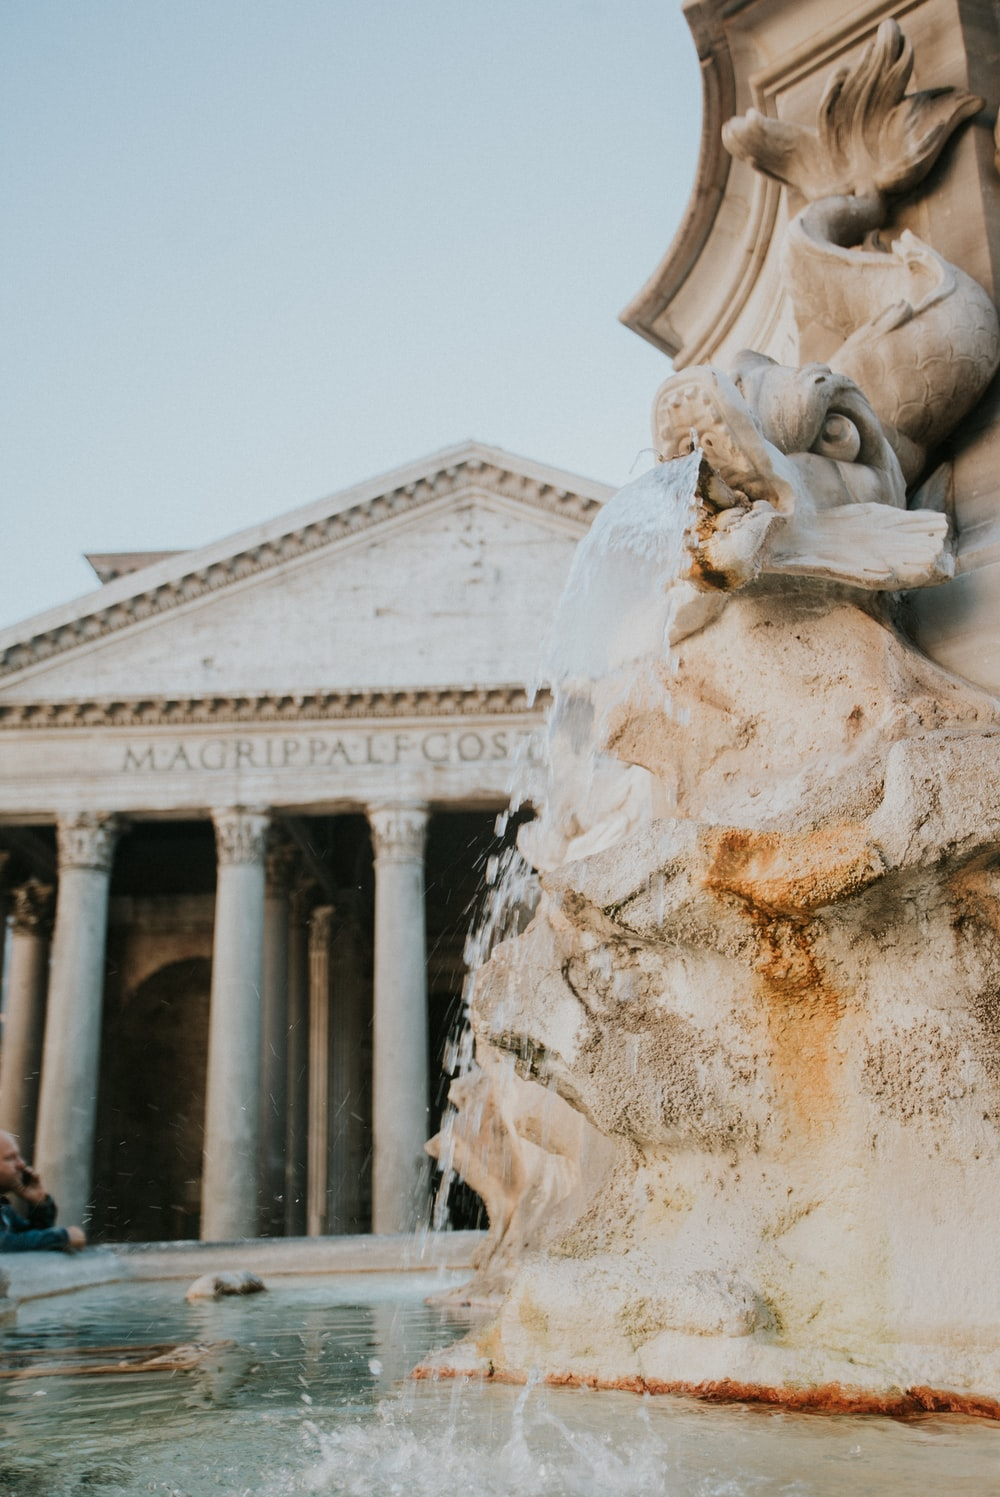 Ancient Statue Pictures Download Free Images On Unsplash